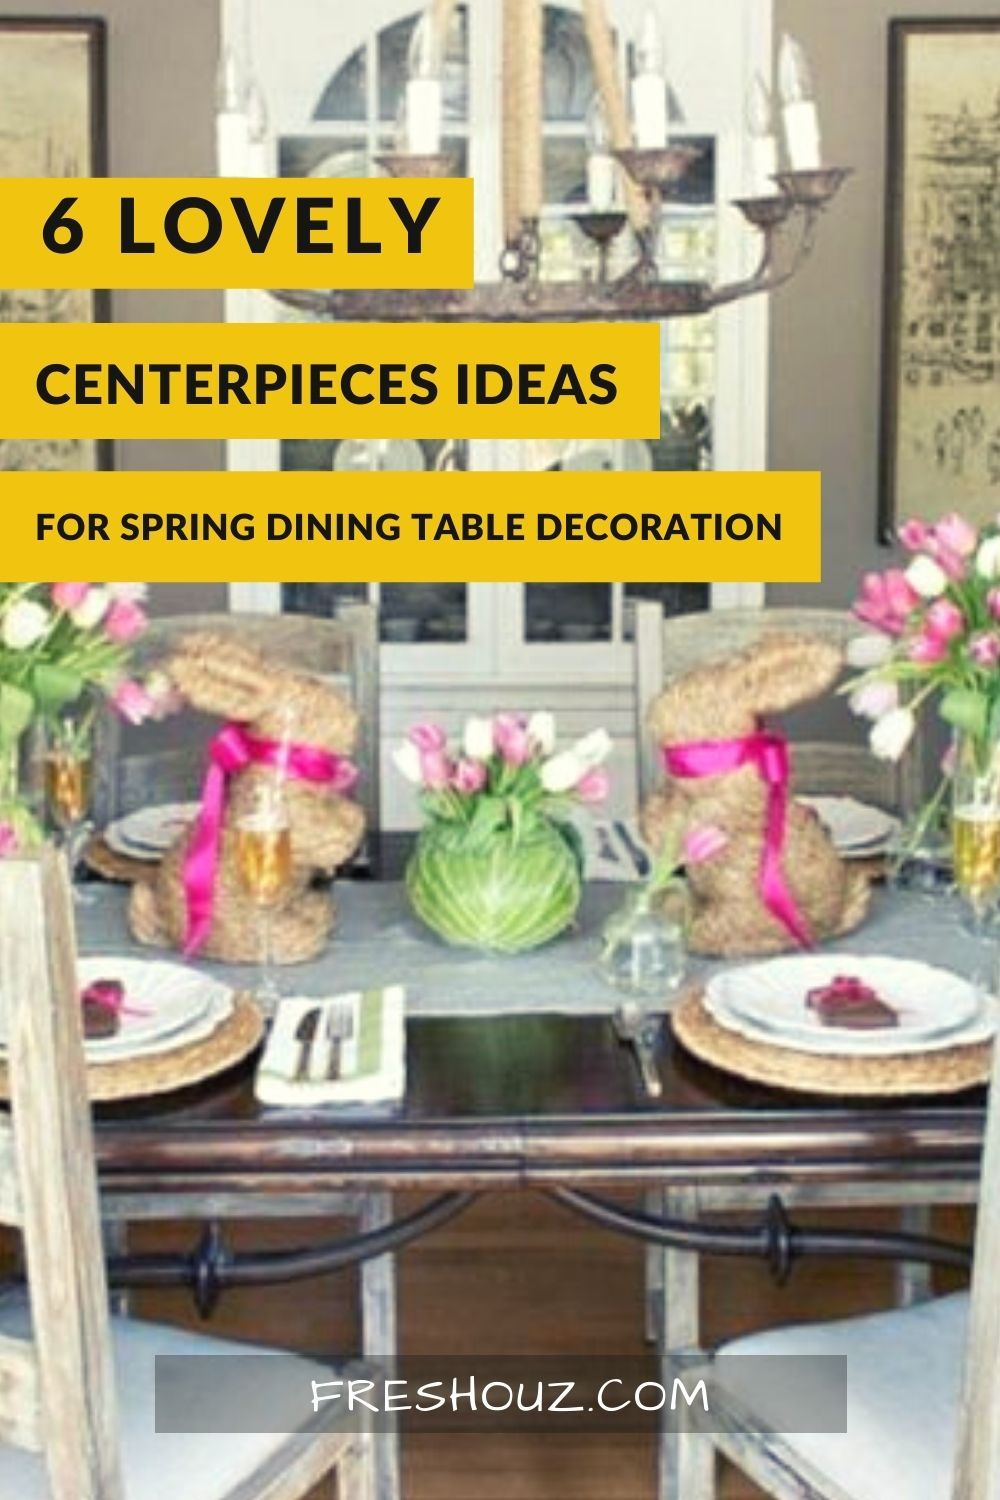 6 Lovely Centerpieces Ideas For Spring Dining Table Decoration In 2021 Dining Table Decor Dining Table Table Decorations